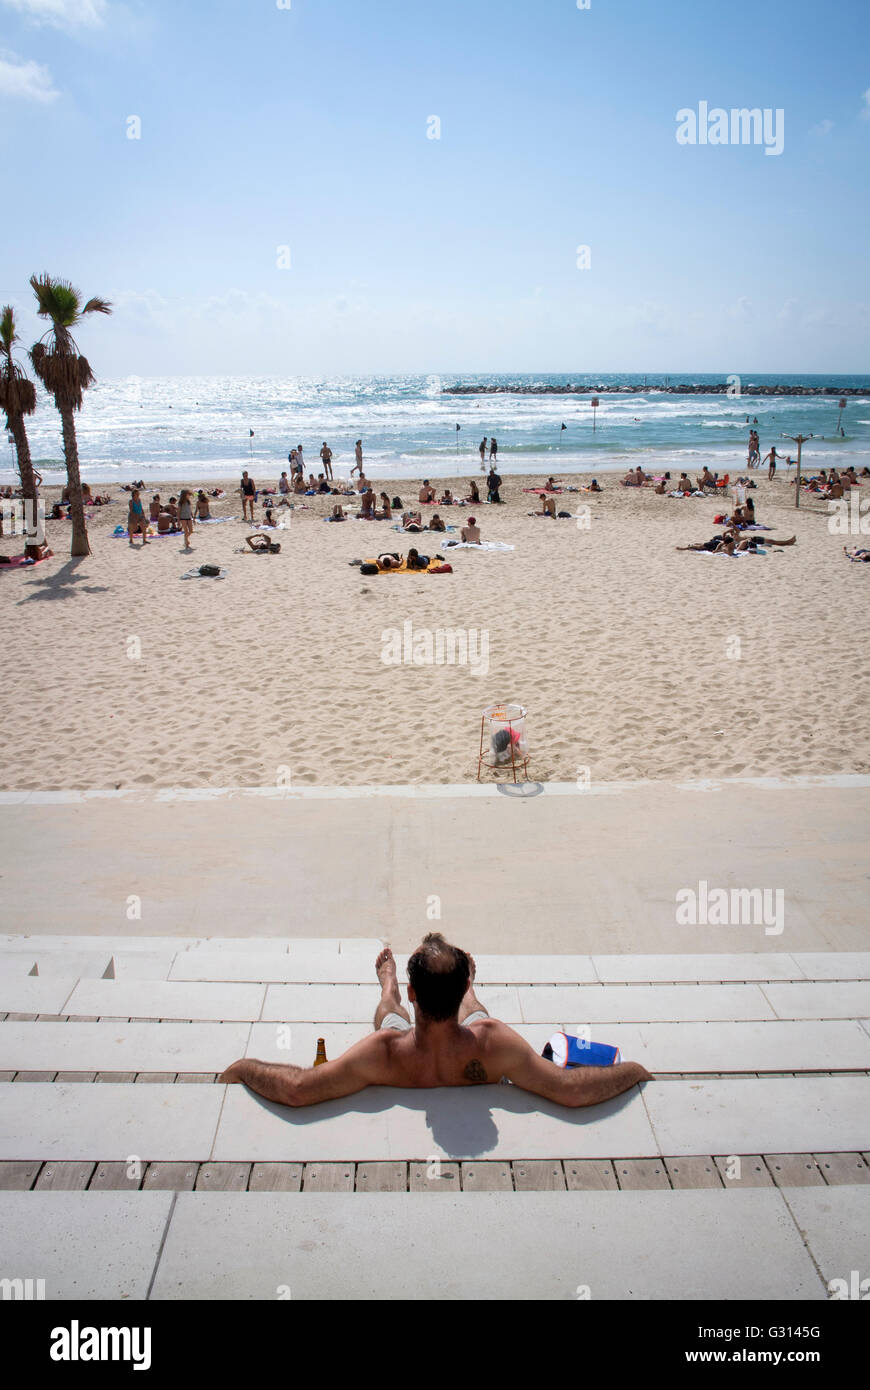 Enjoy the sun at the beach in Tel Aviv, Israel. - Stock Image